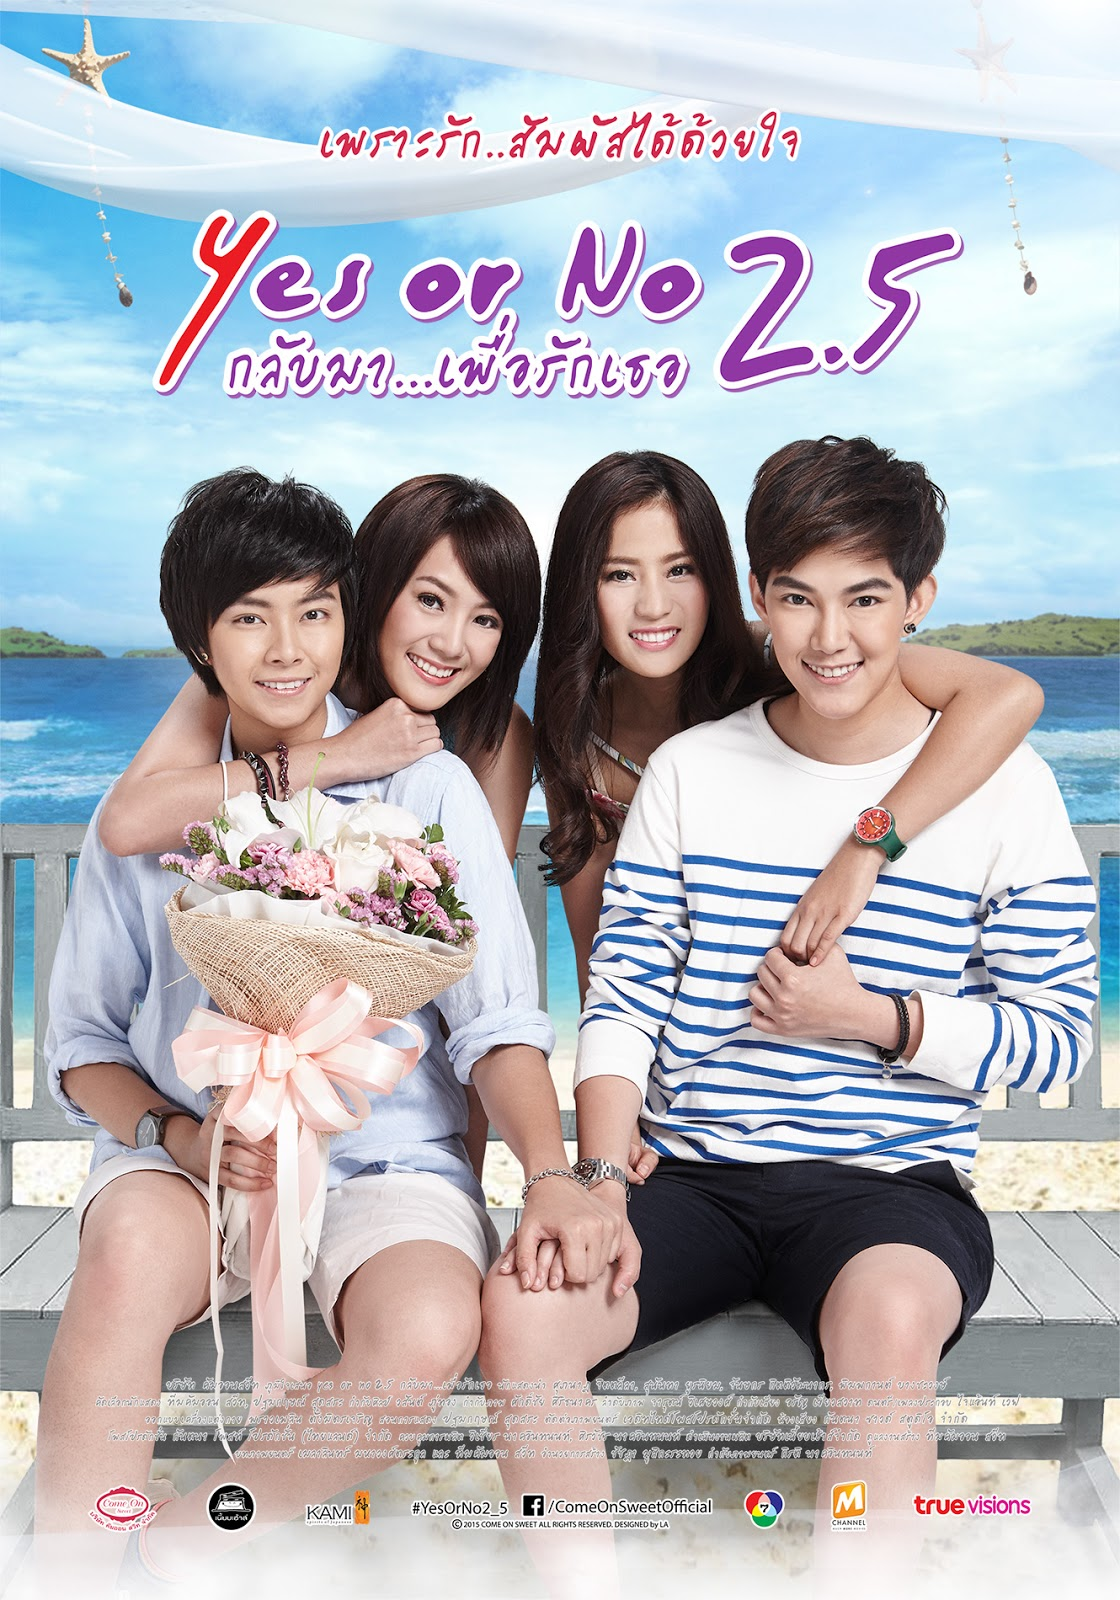 Yes Or No 2 [Engsub]